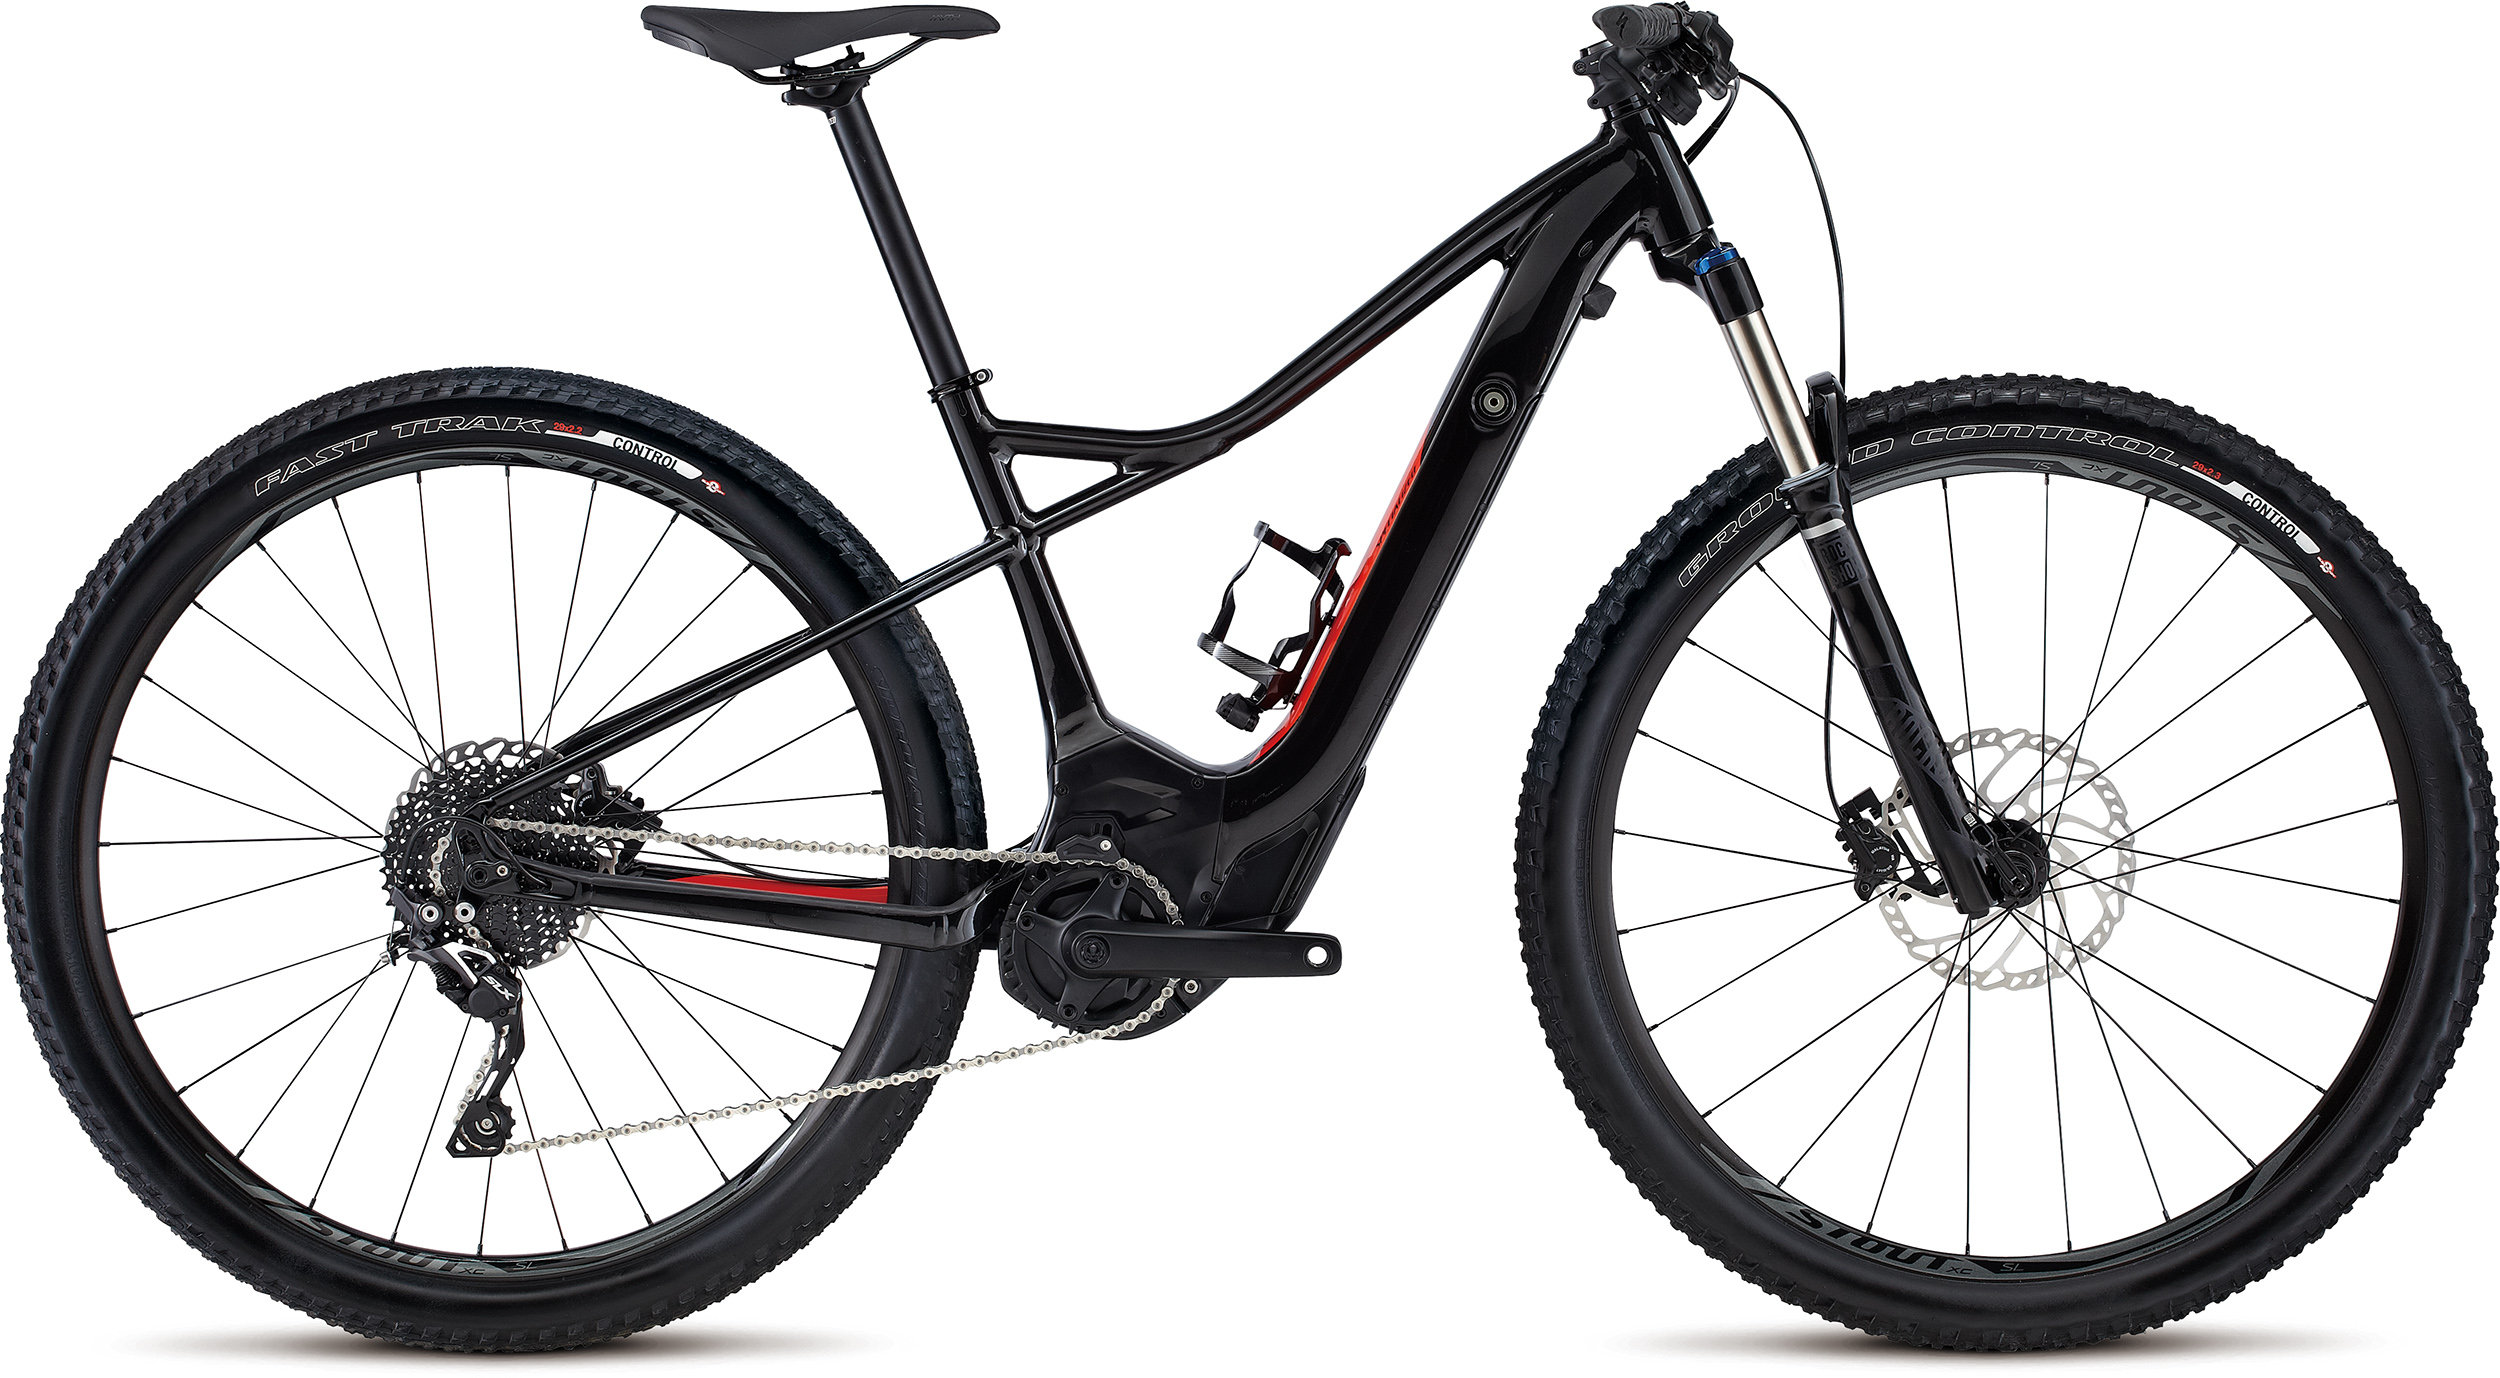 SPECIALIZED LEVO WMN HT 29 CE METBLK/NRDCRED S - Bike Maniac